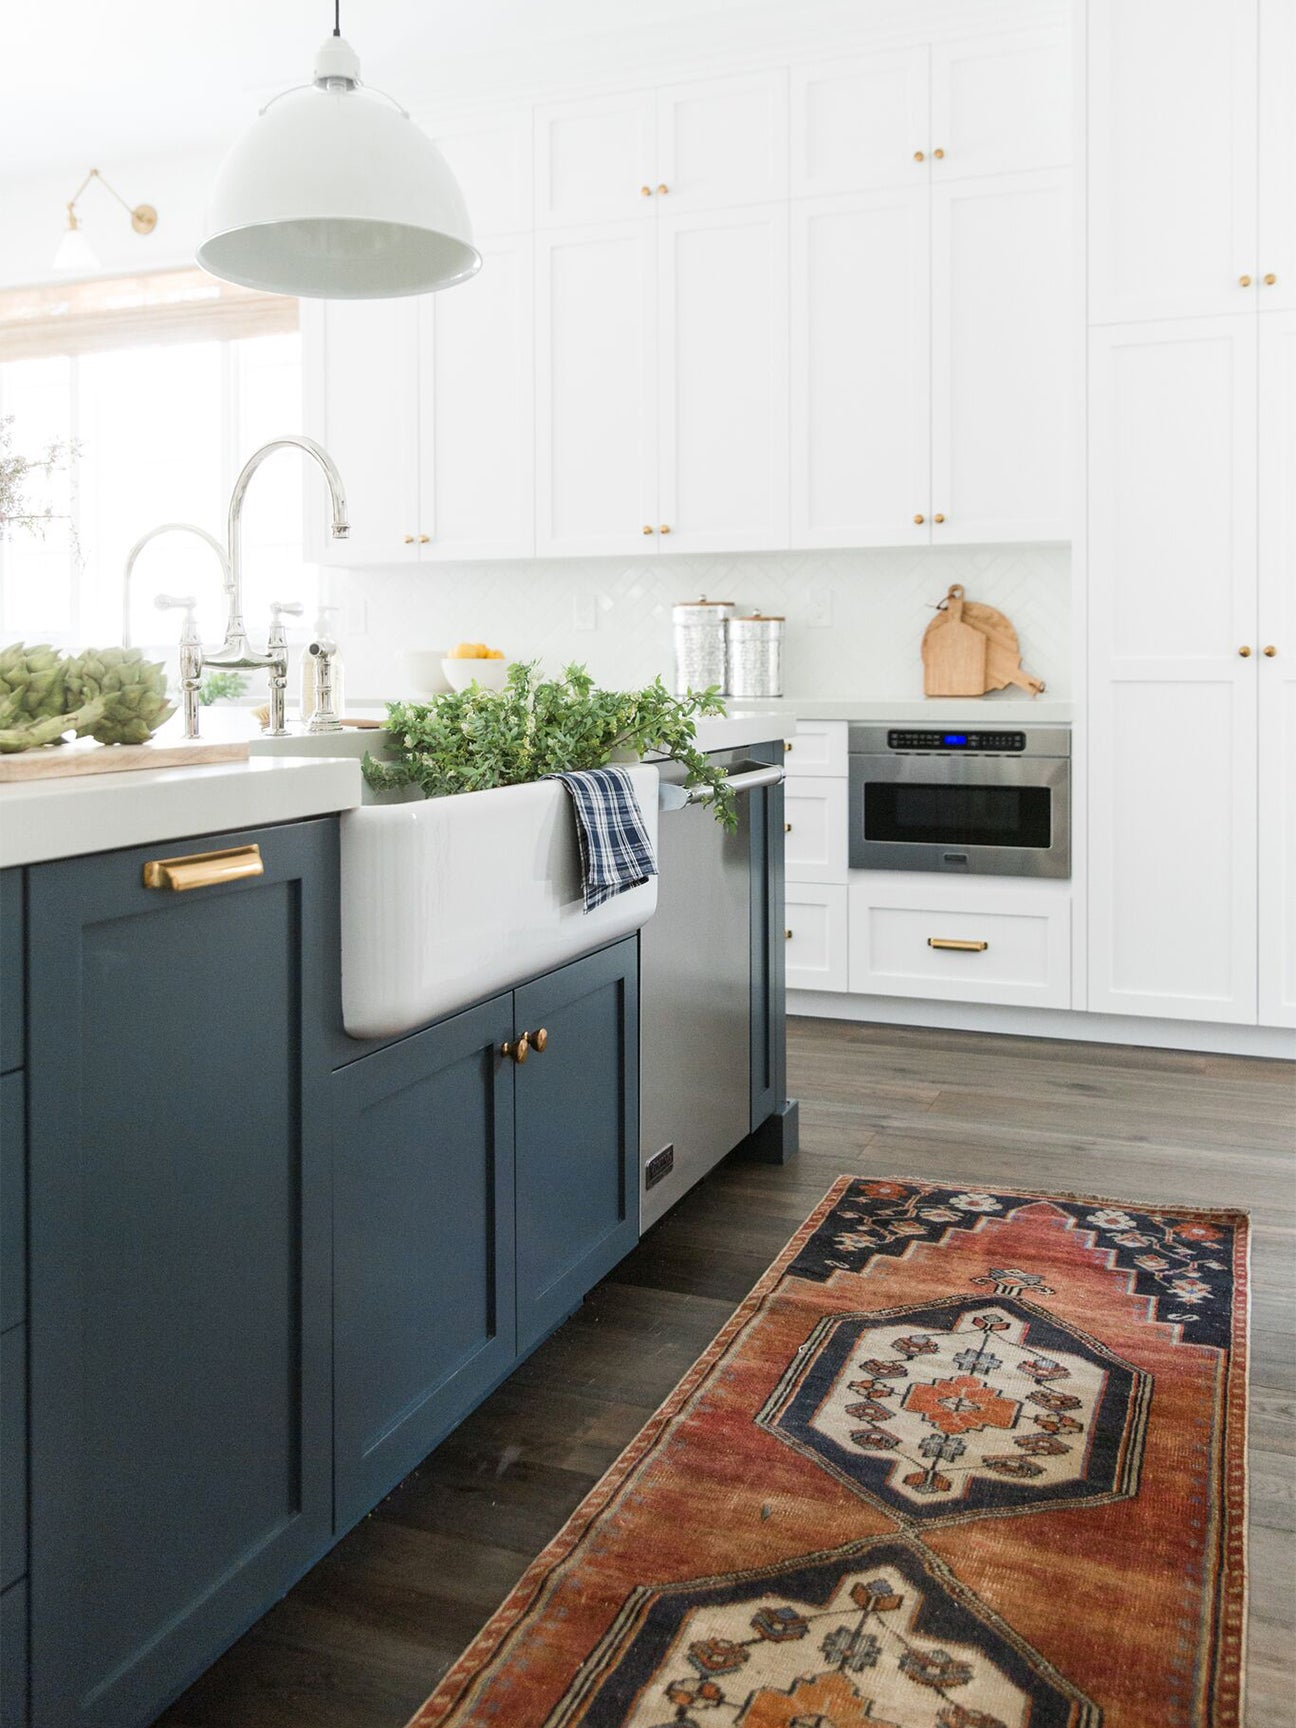 Blue and white kitchen with vintage runner